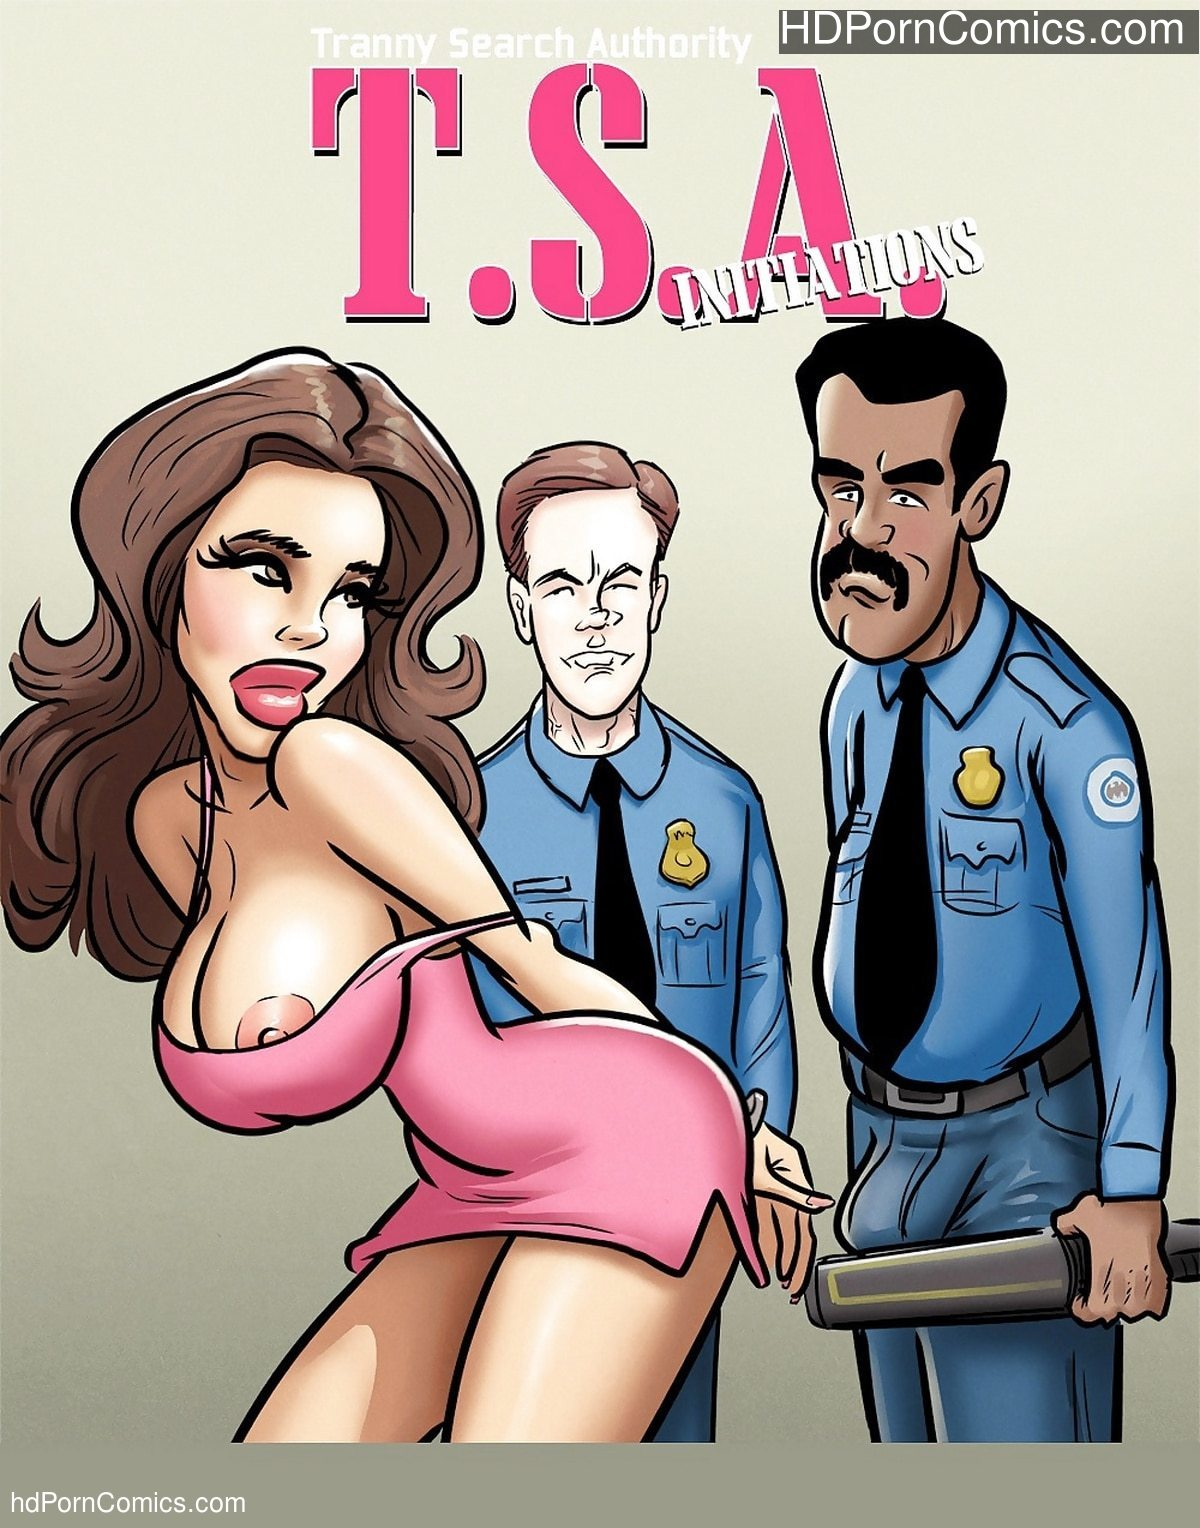 John Persons – T.S.A. Initiations free Cartoon Porn Comic